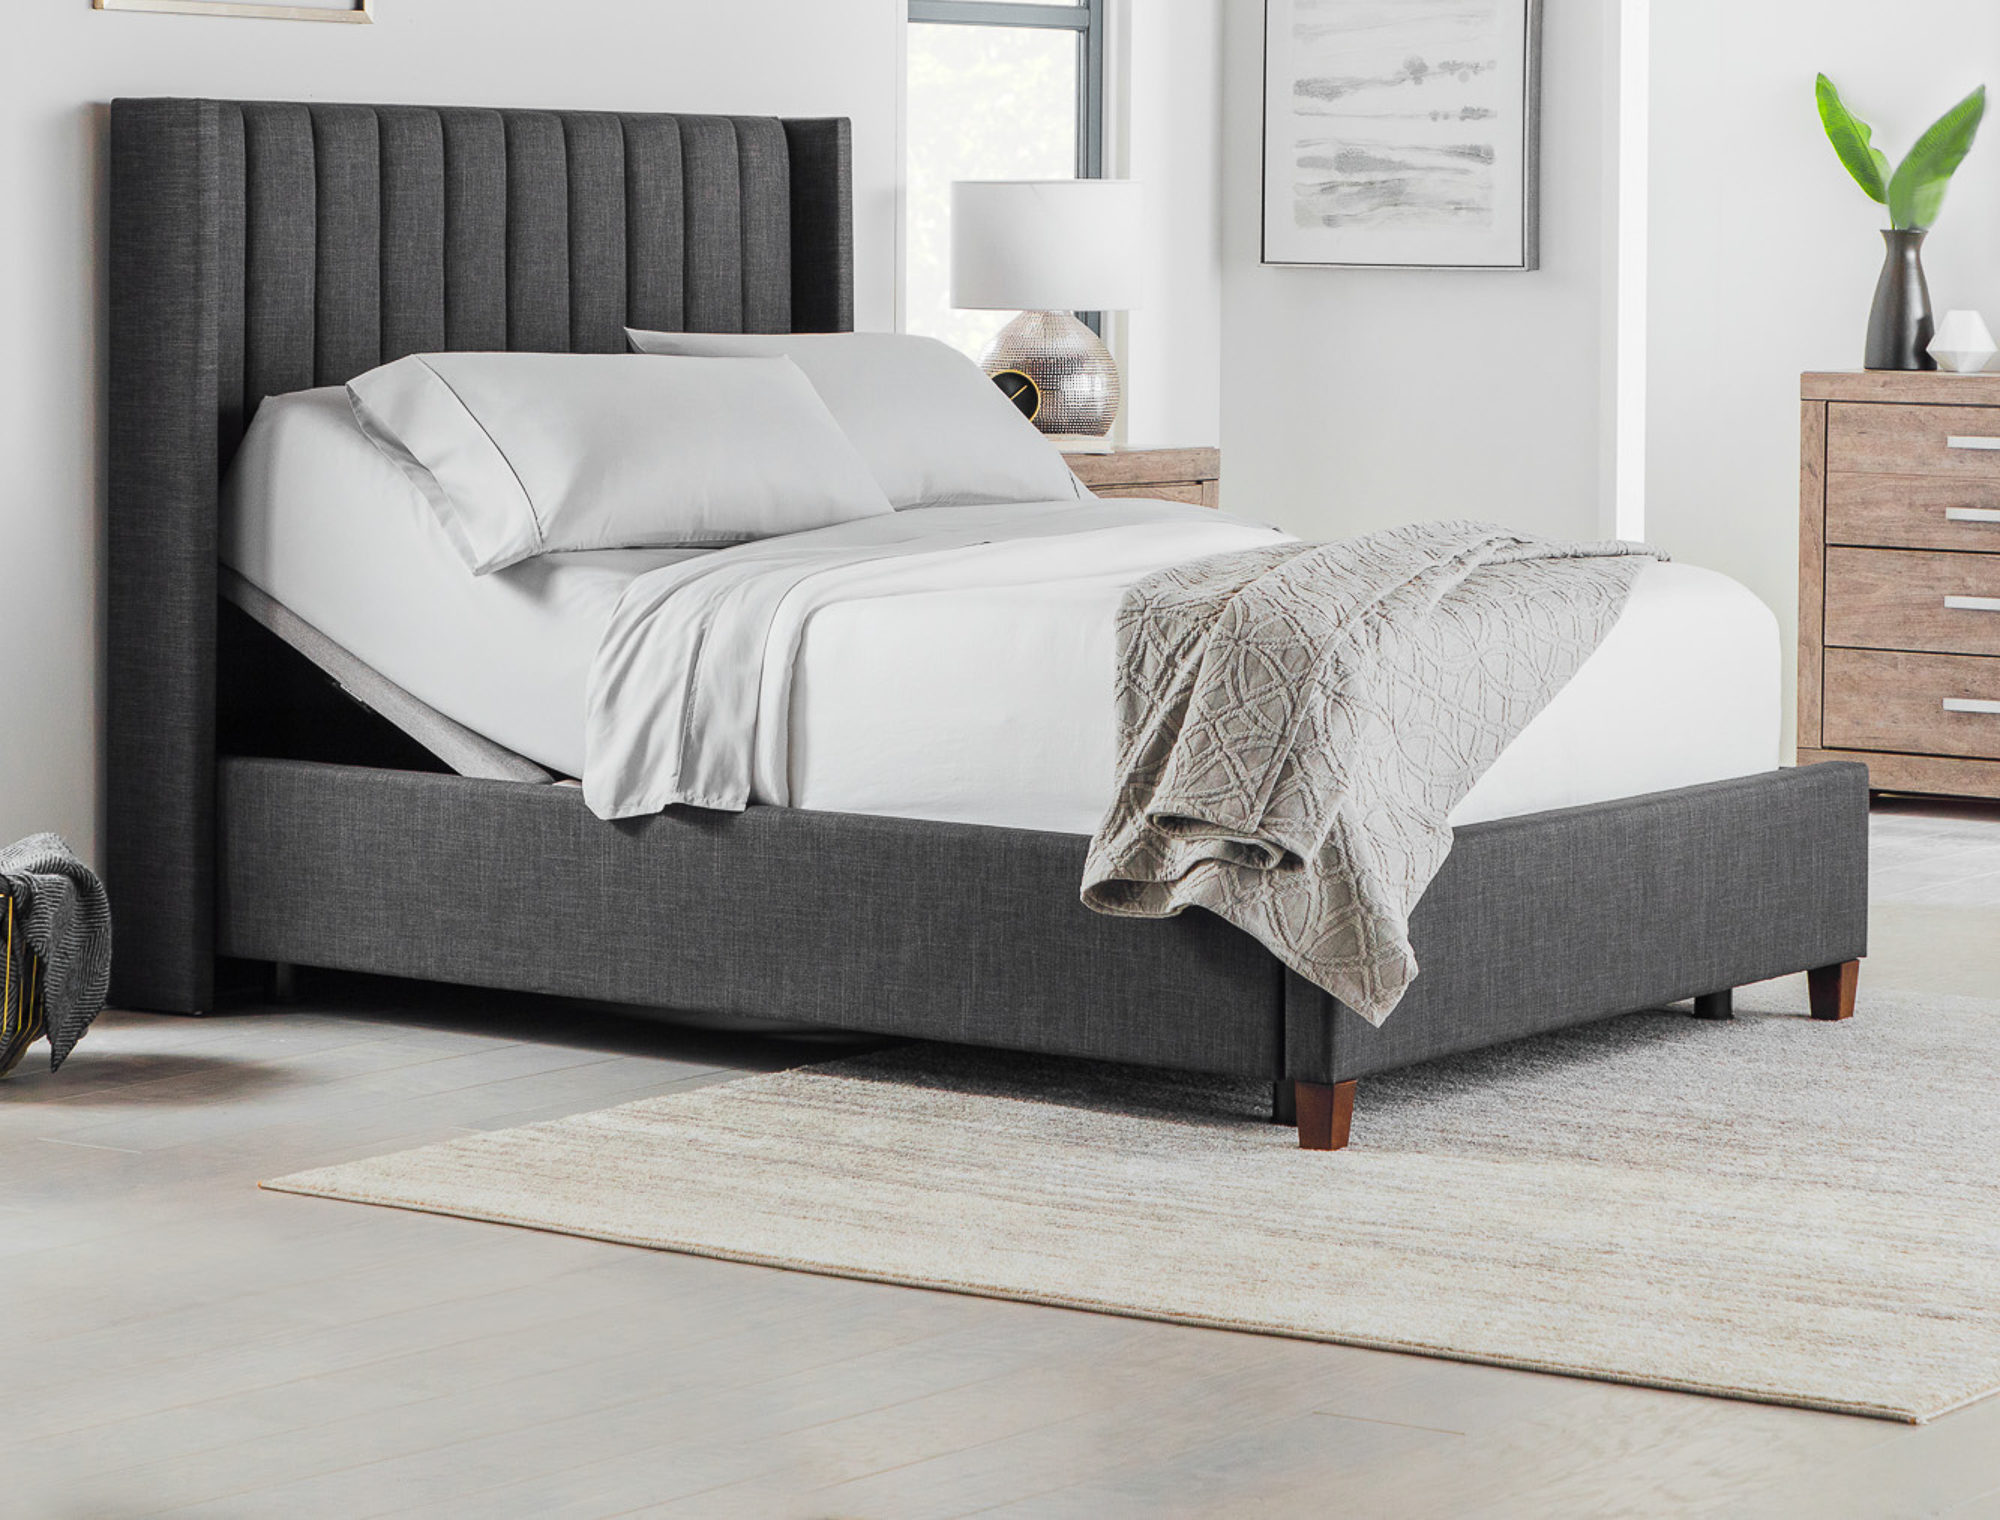 Example of Malouf Bedding